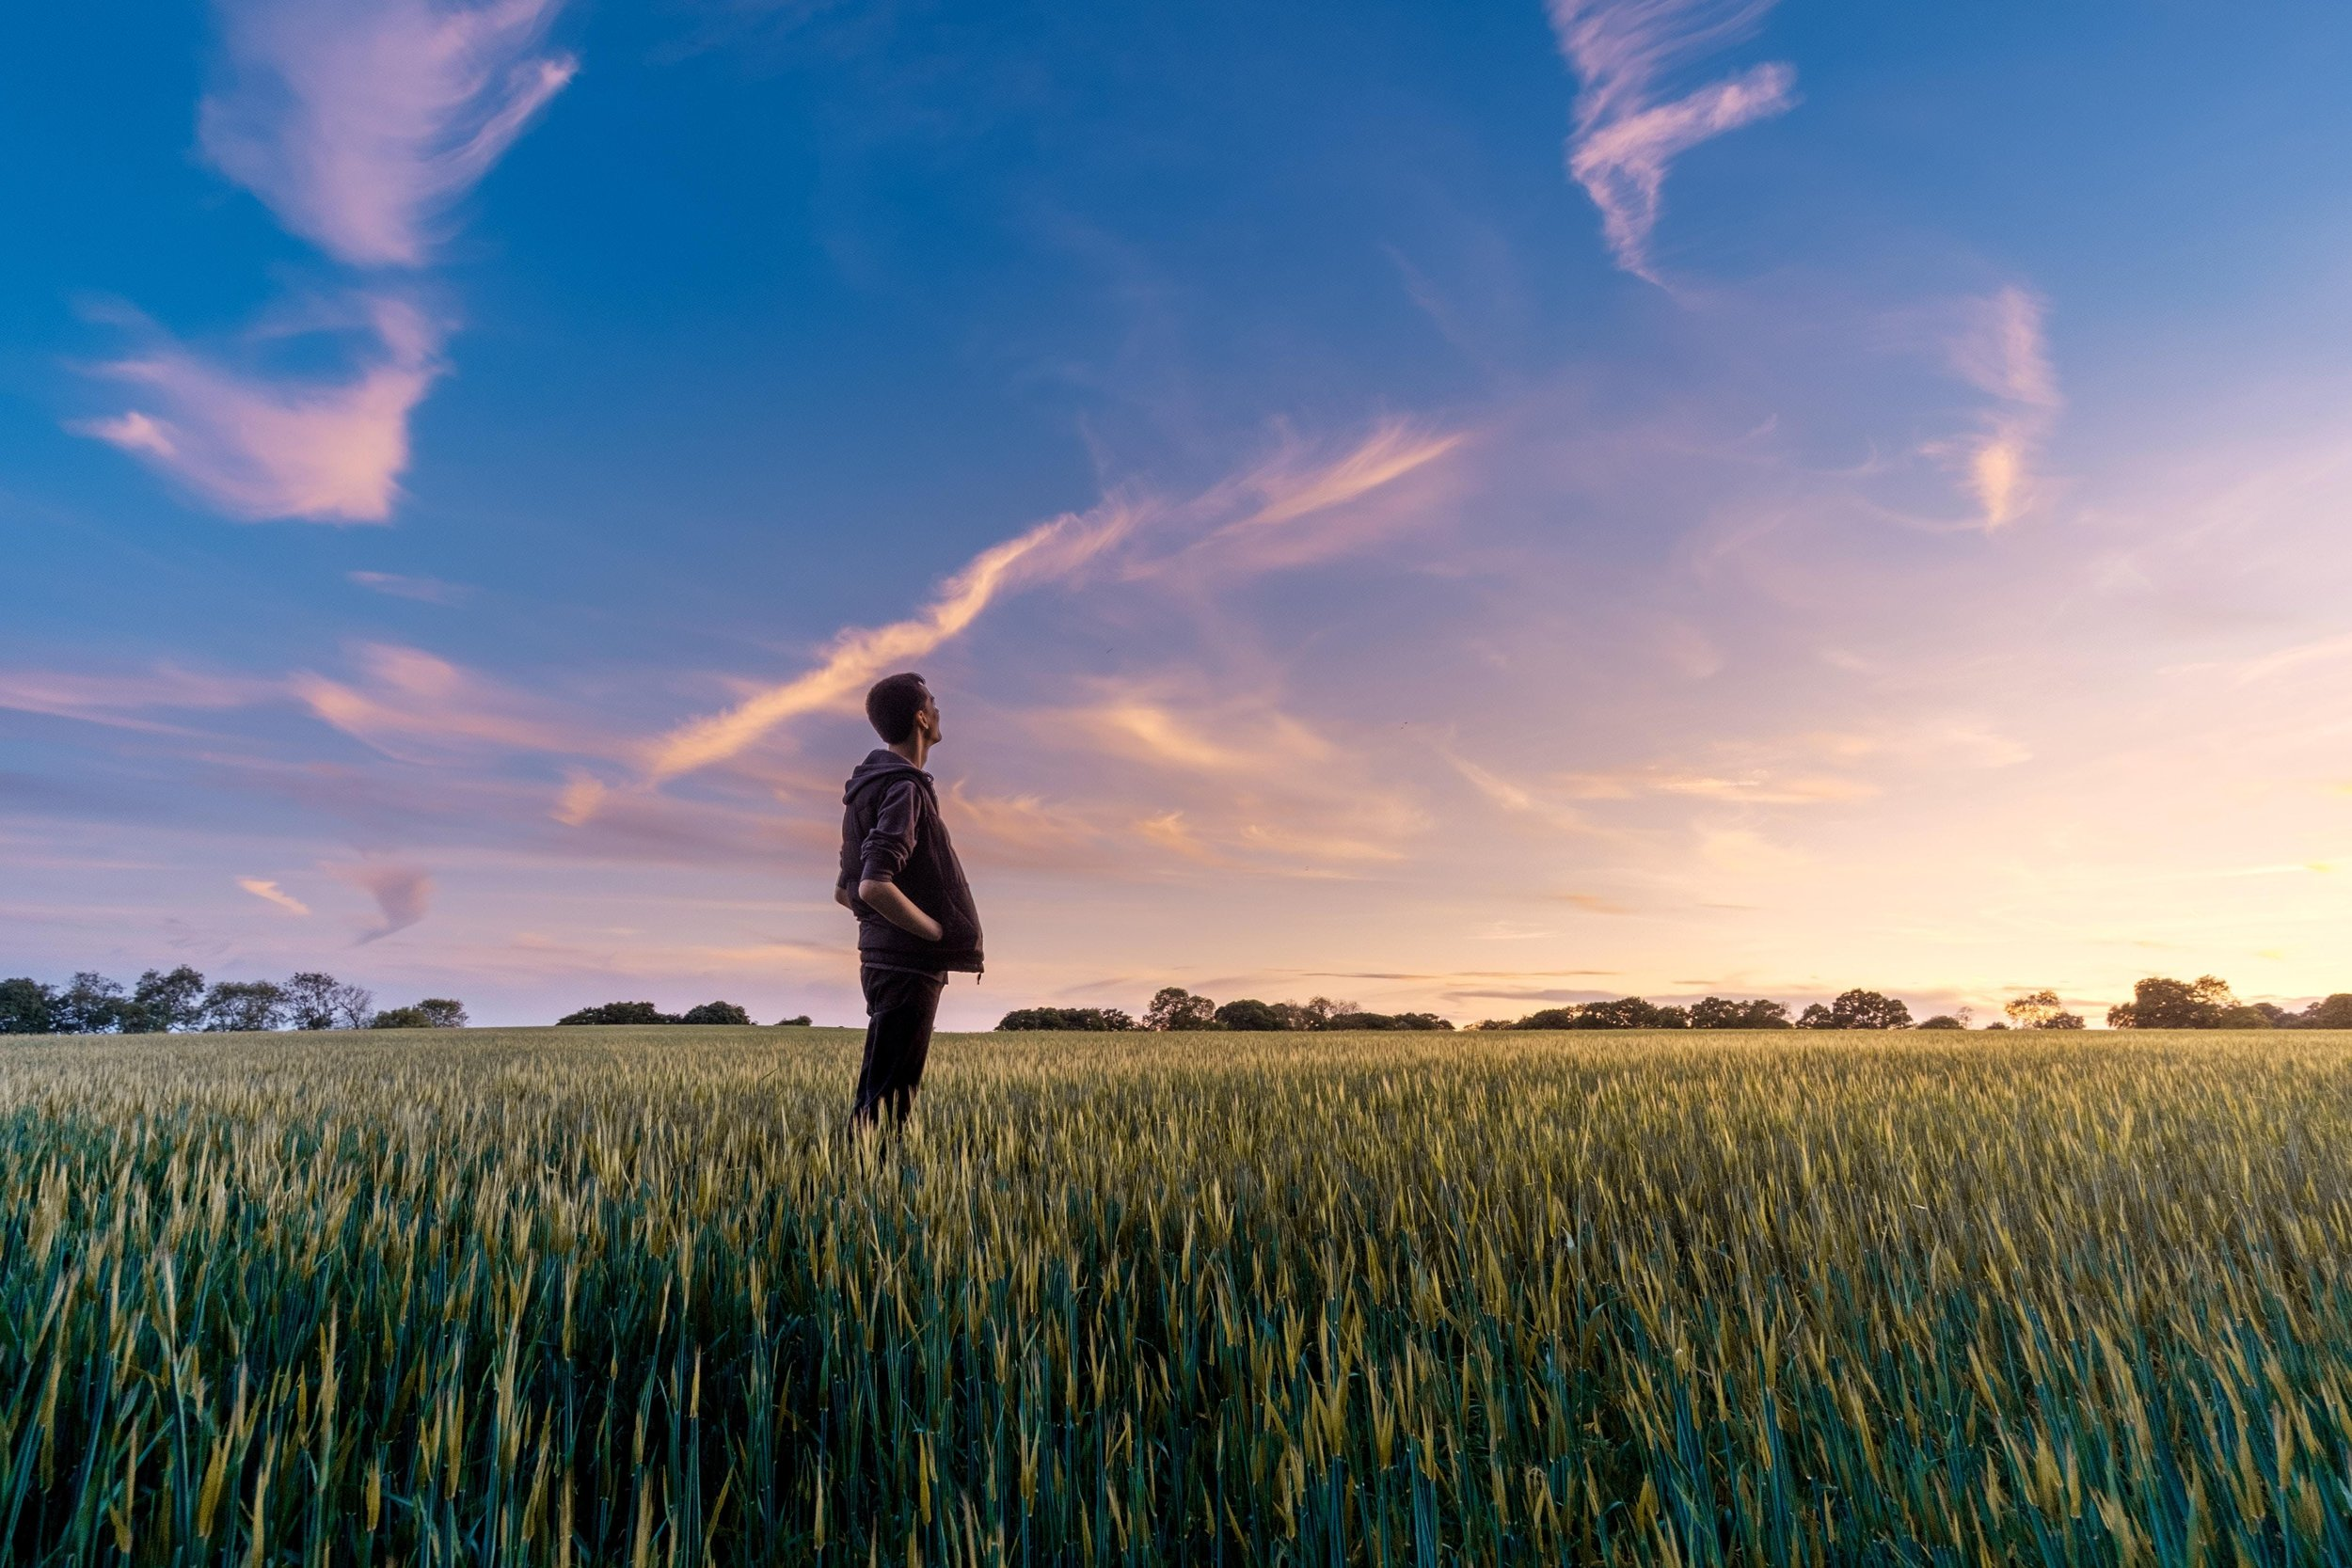 young man in a hoodie in a field looking wistfully into the breaking dawn, and dreaming of the future